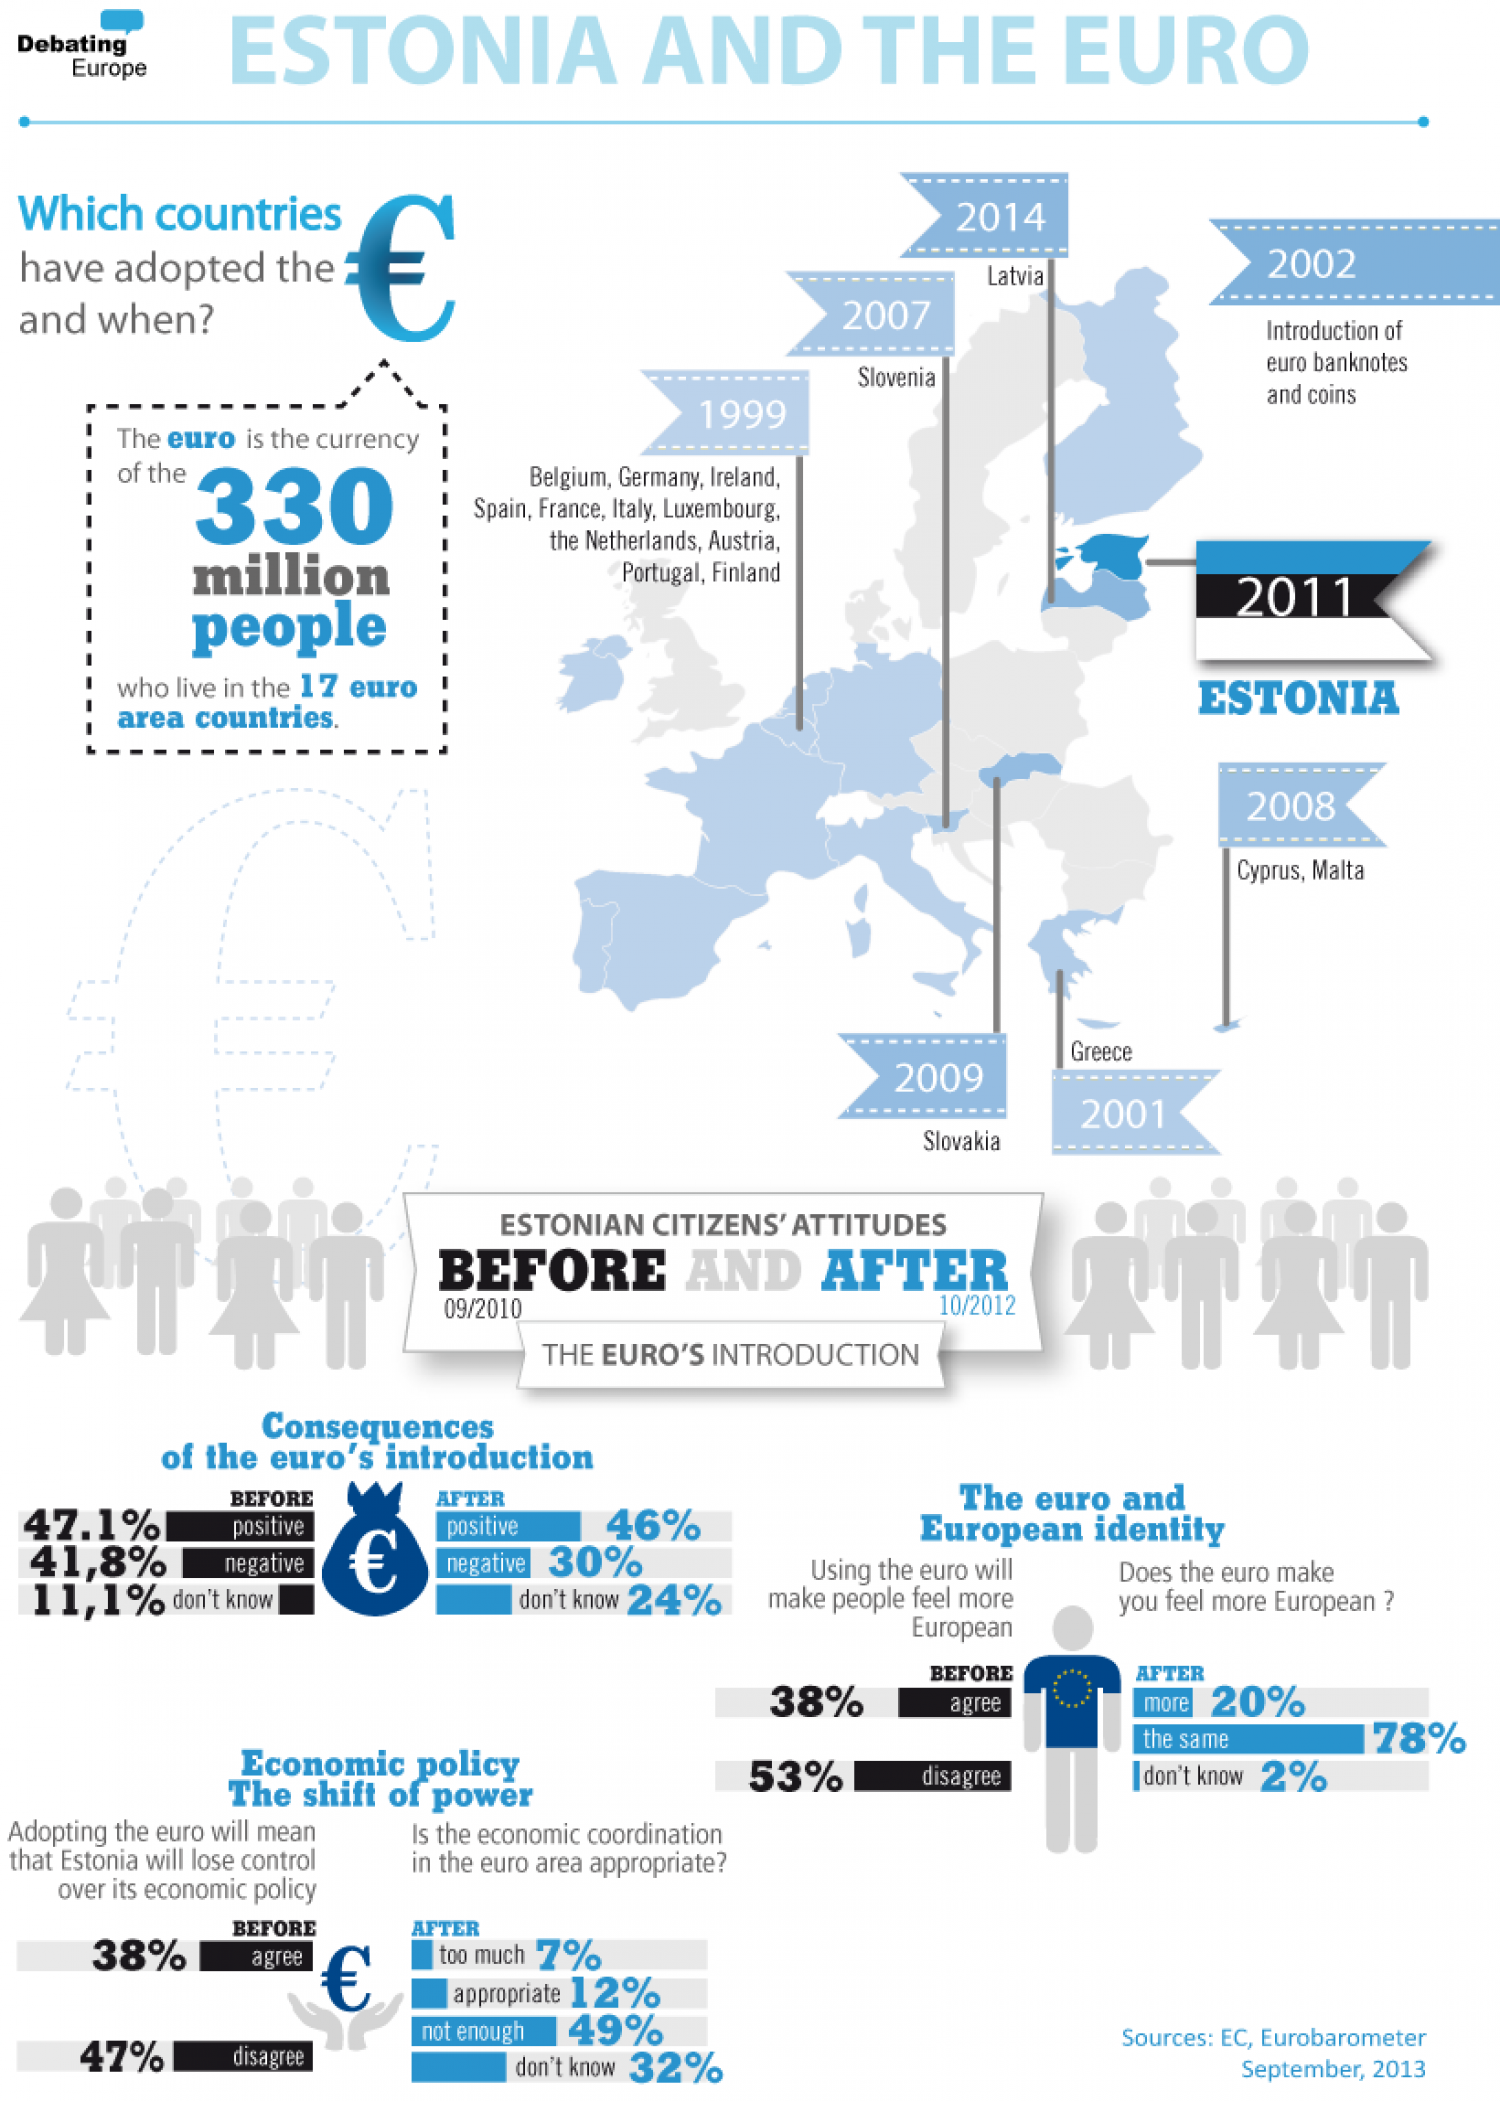 Estonia and the Euro Infographic